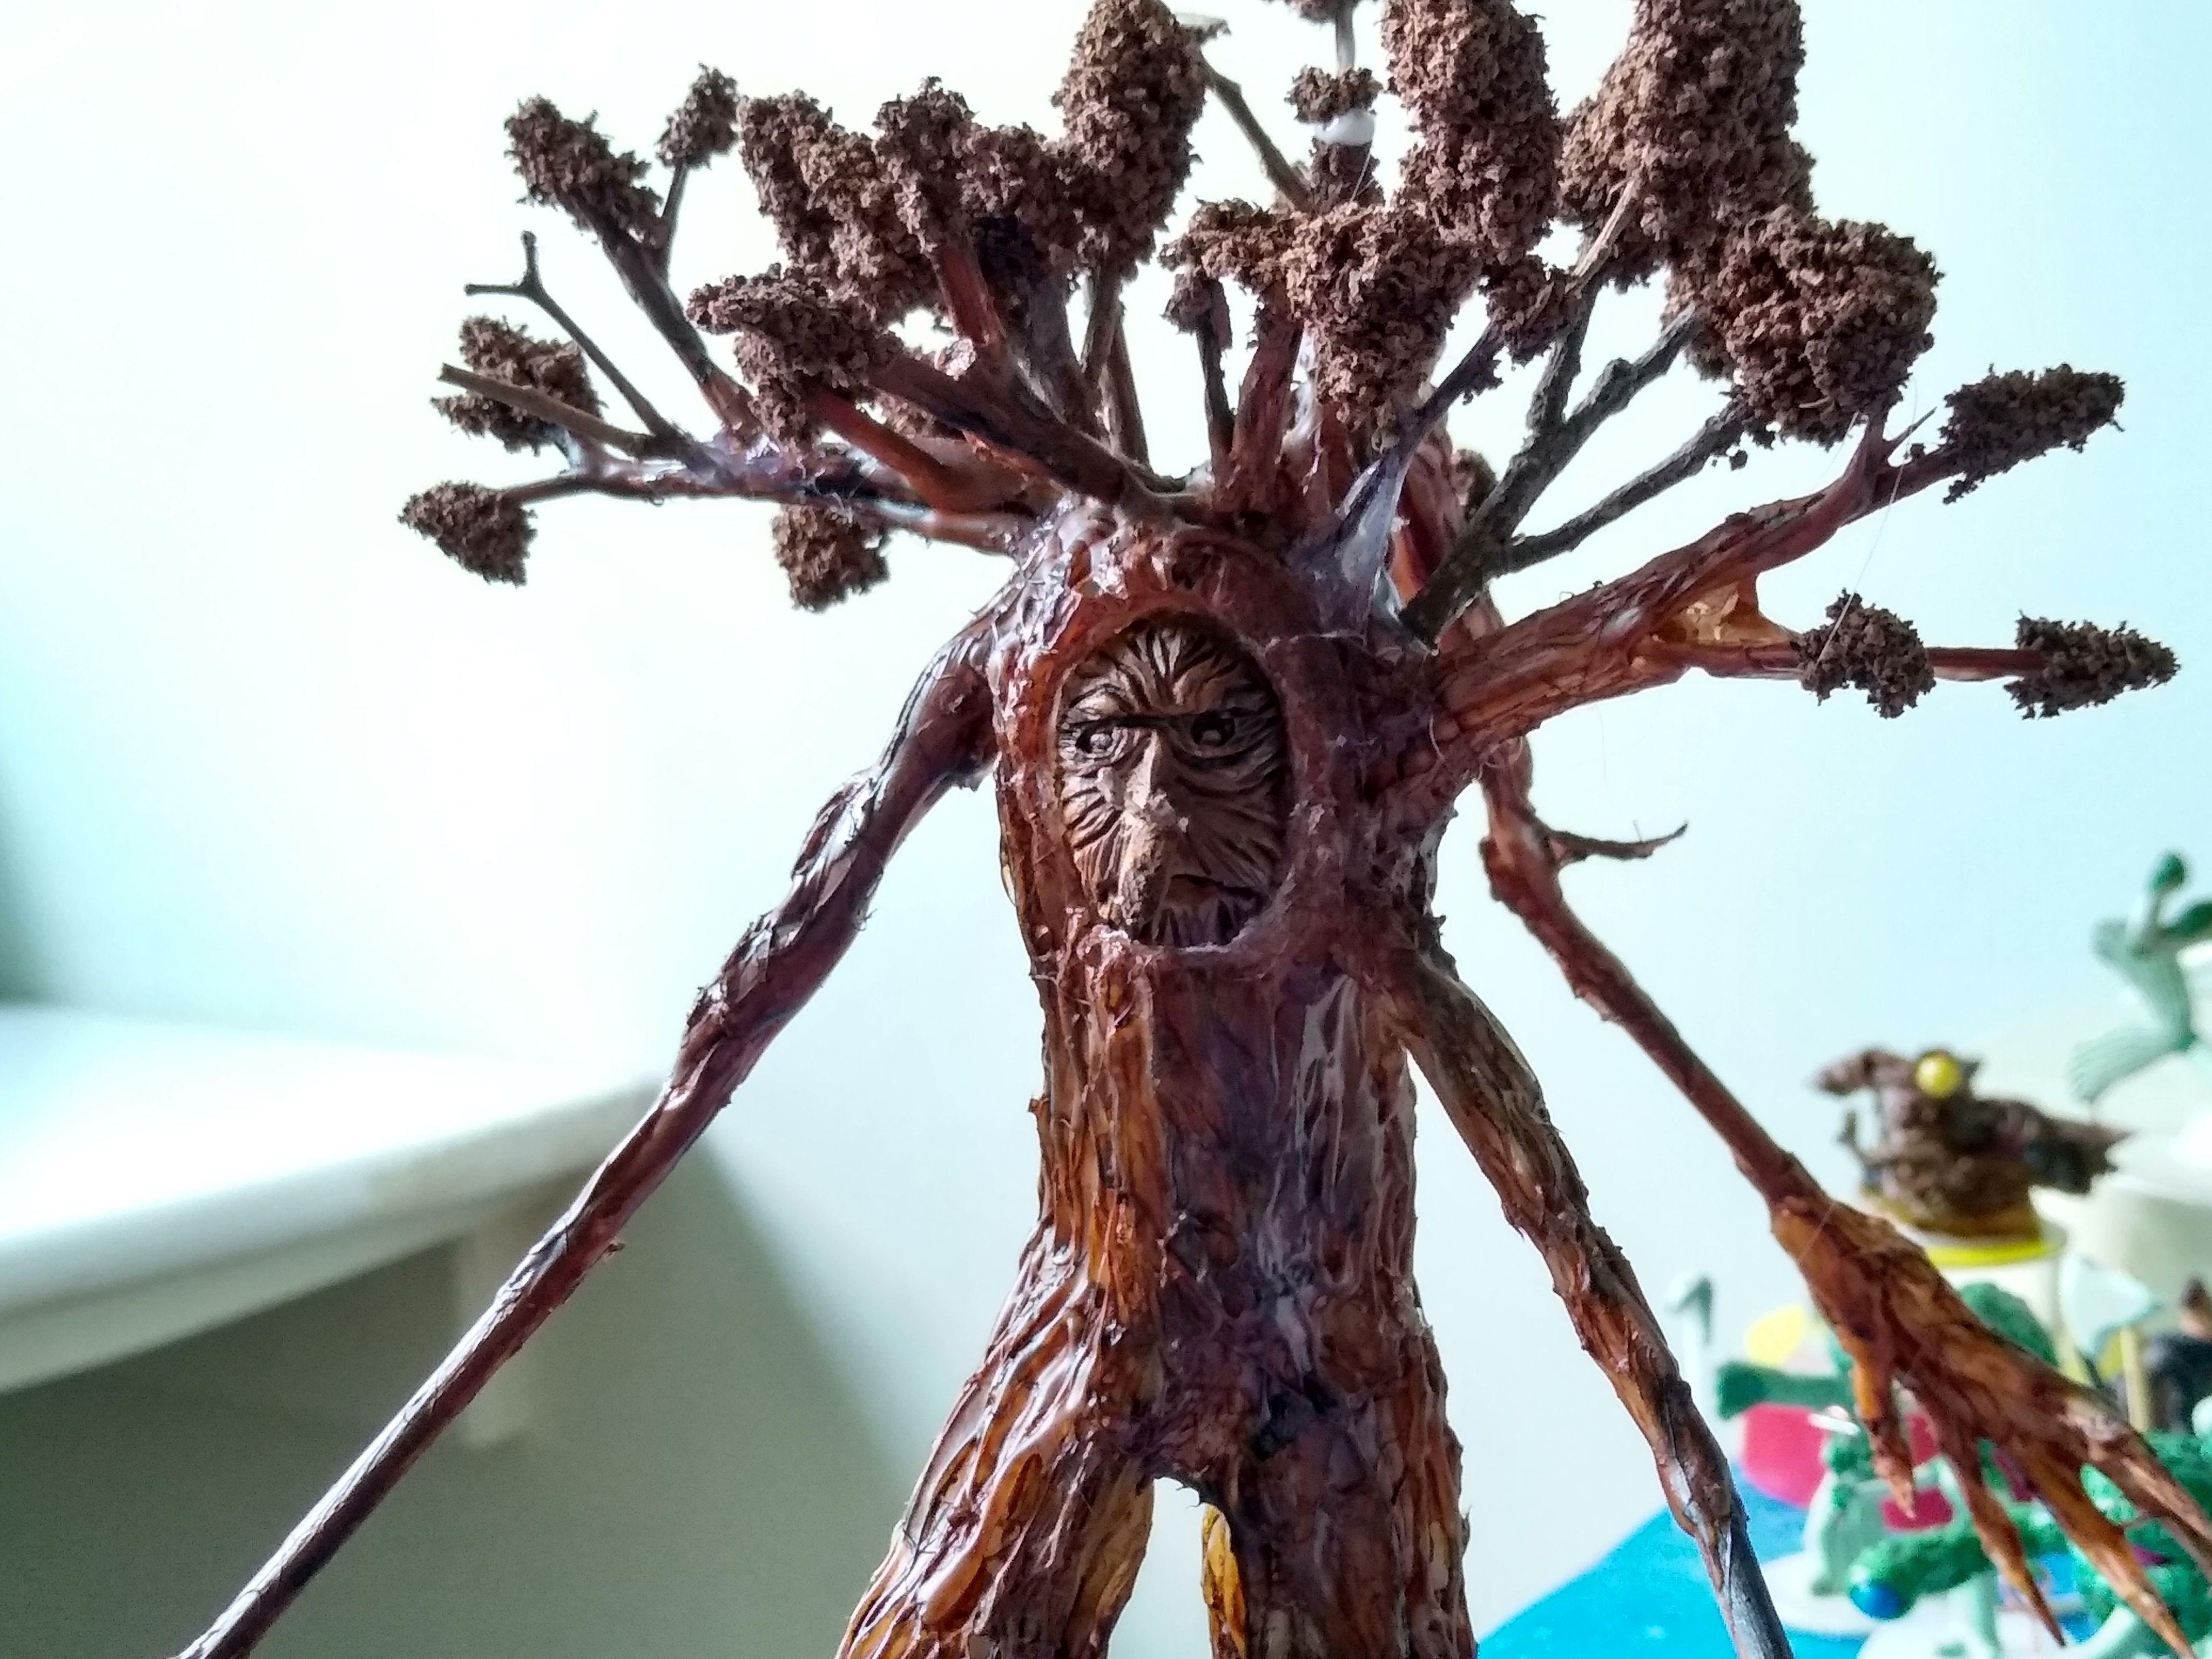 Dragon, Dungeons, Dungeons And Dragons, Ent, Mini, Miniature, Sculpting, Treant